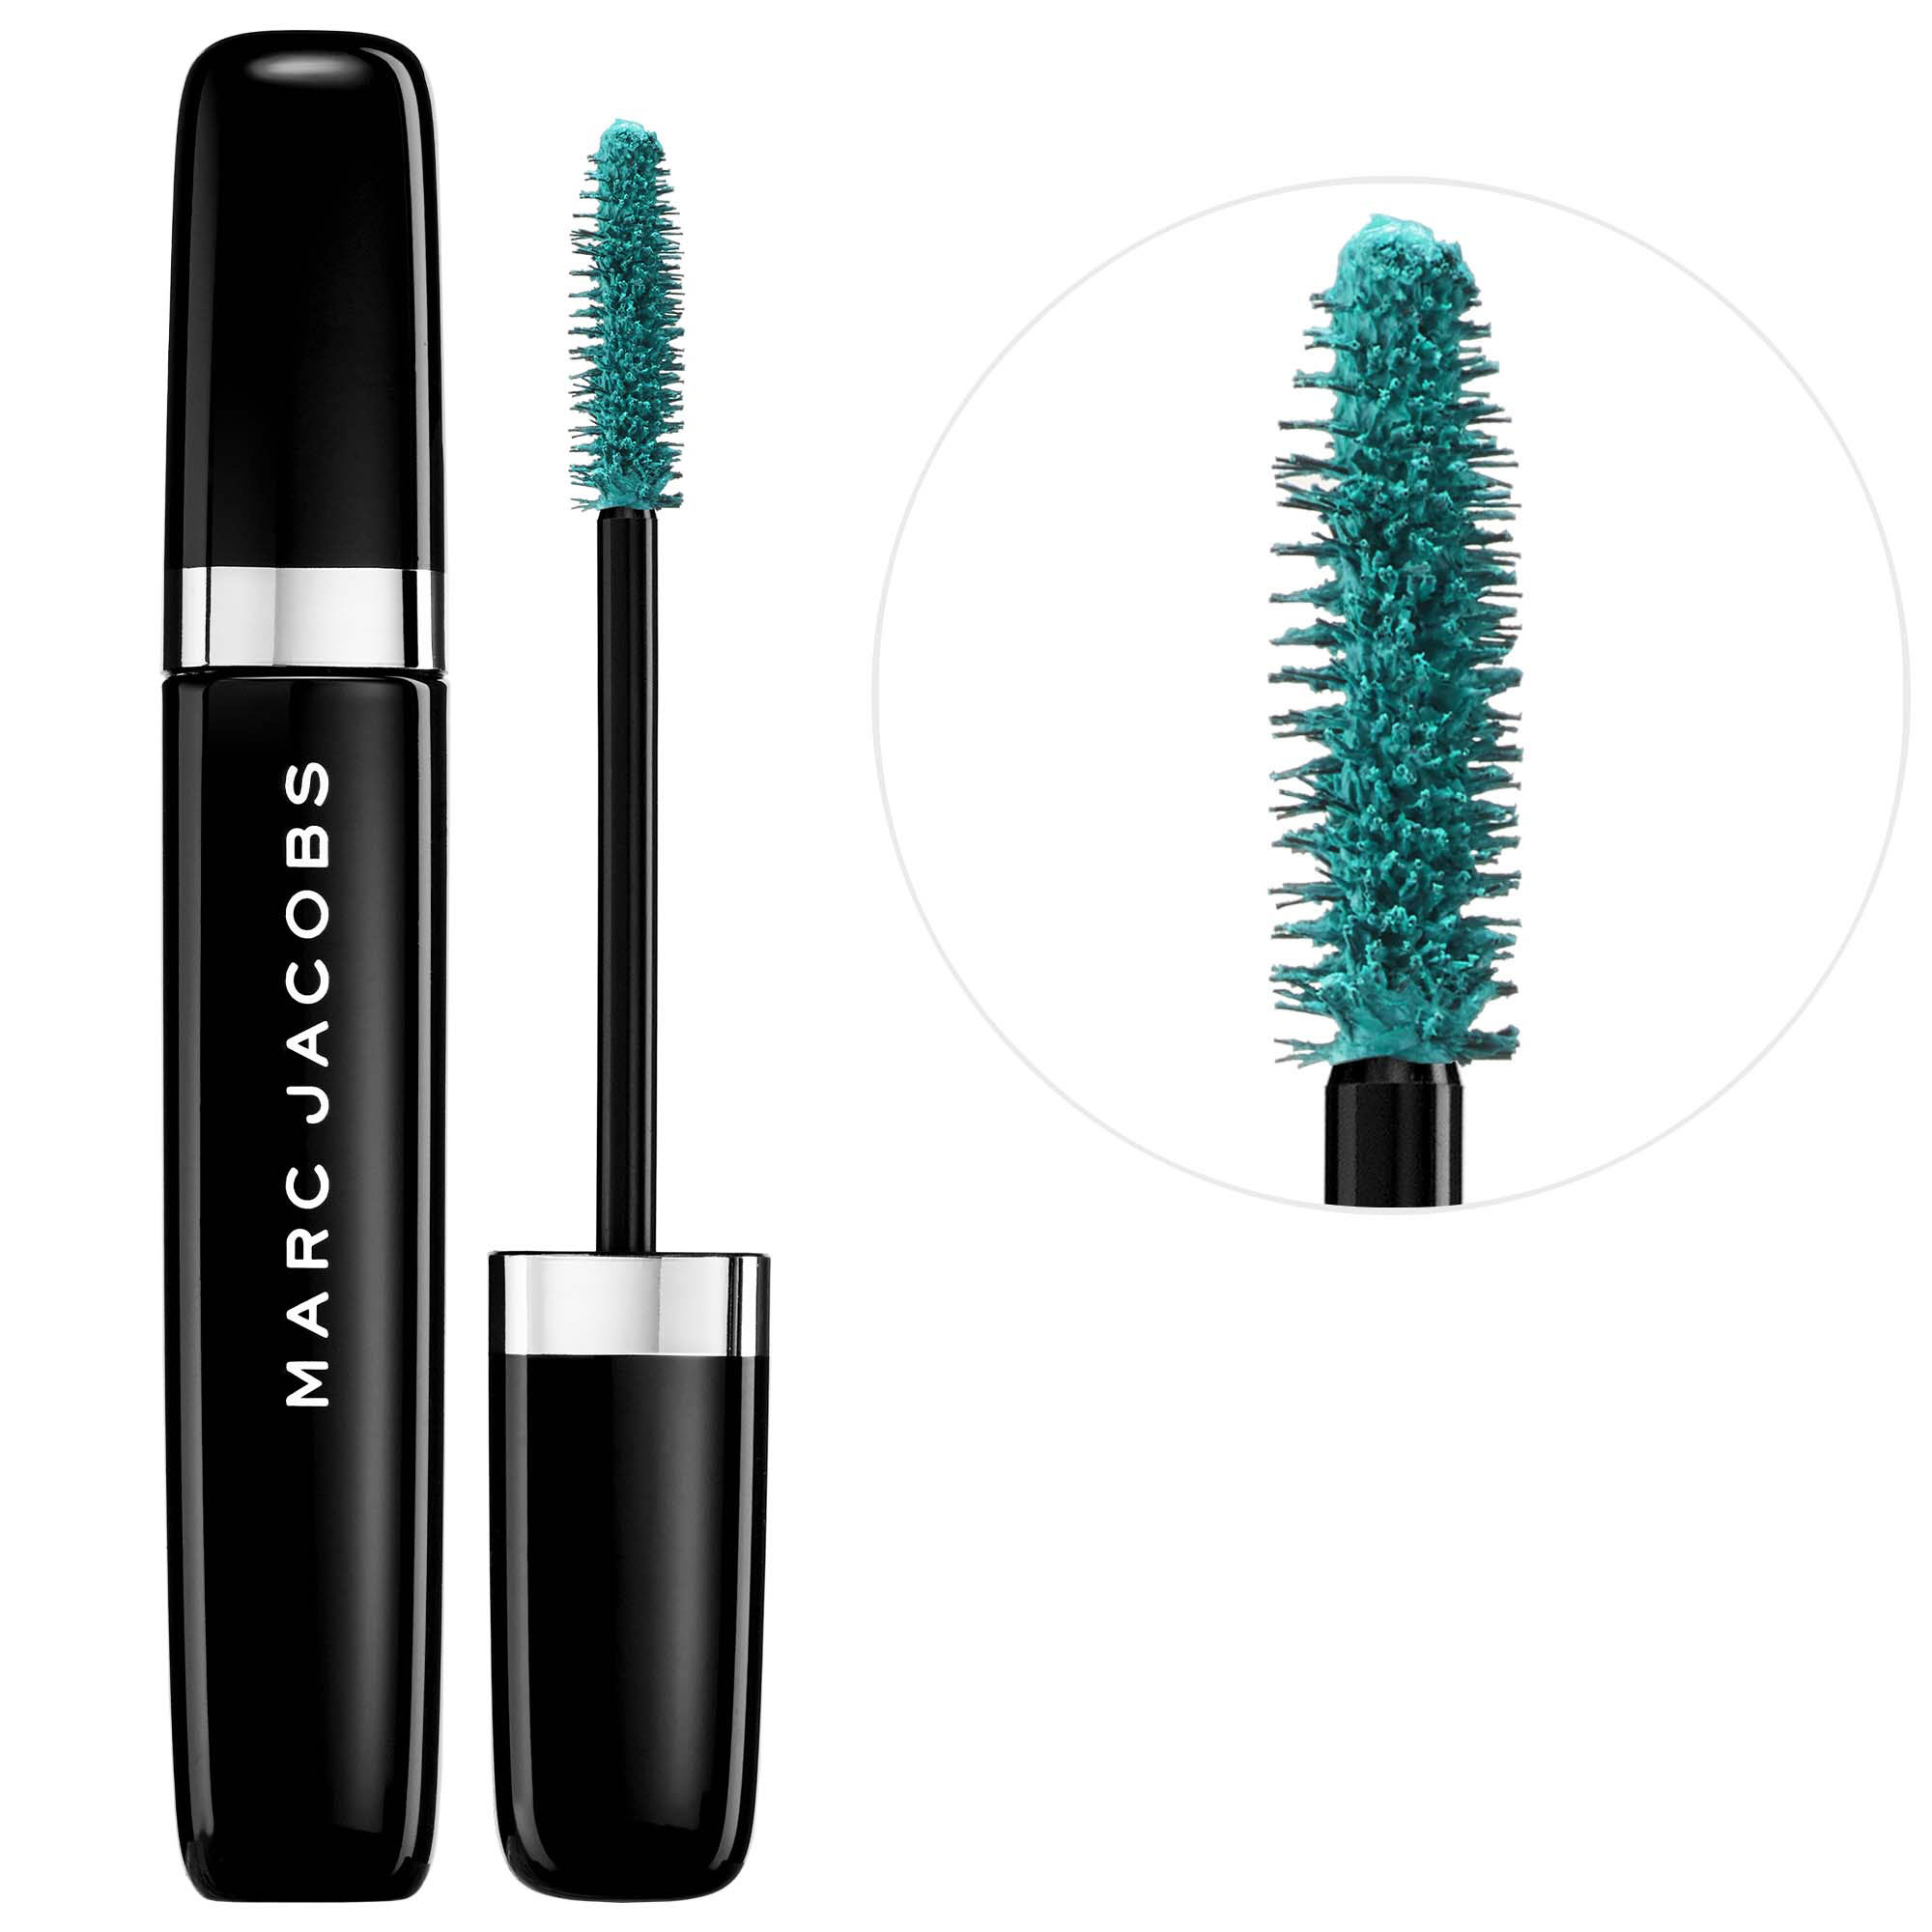 marc-jacobs-beauty-omega-lash-volumizing-mascara-in-peacock-40-for-spring-2017